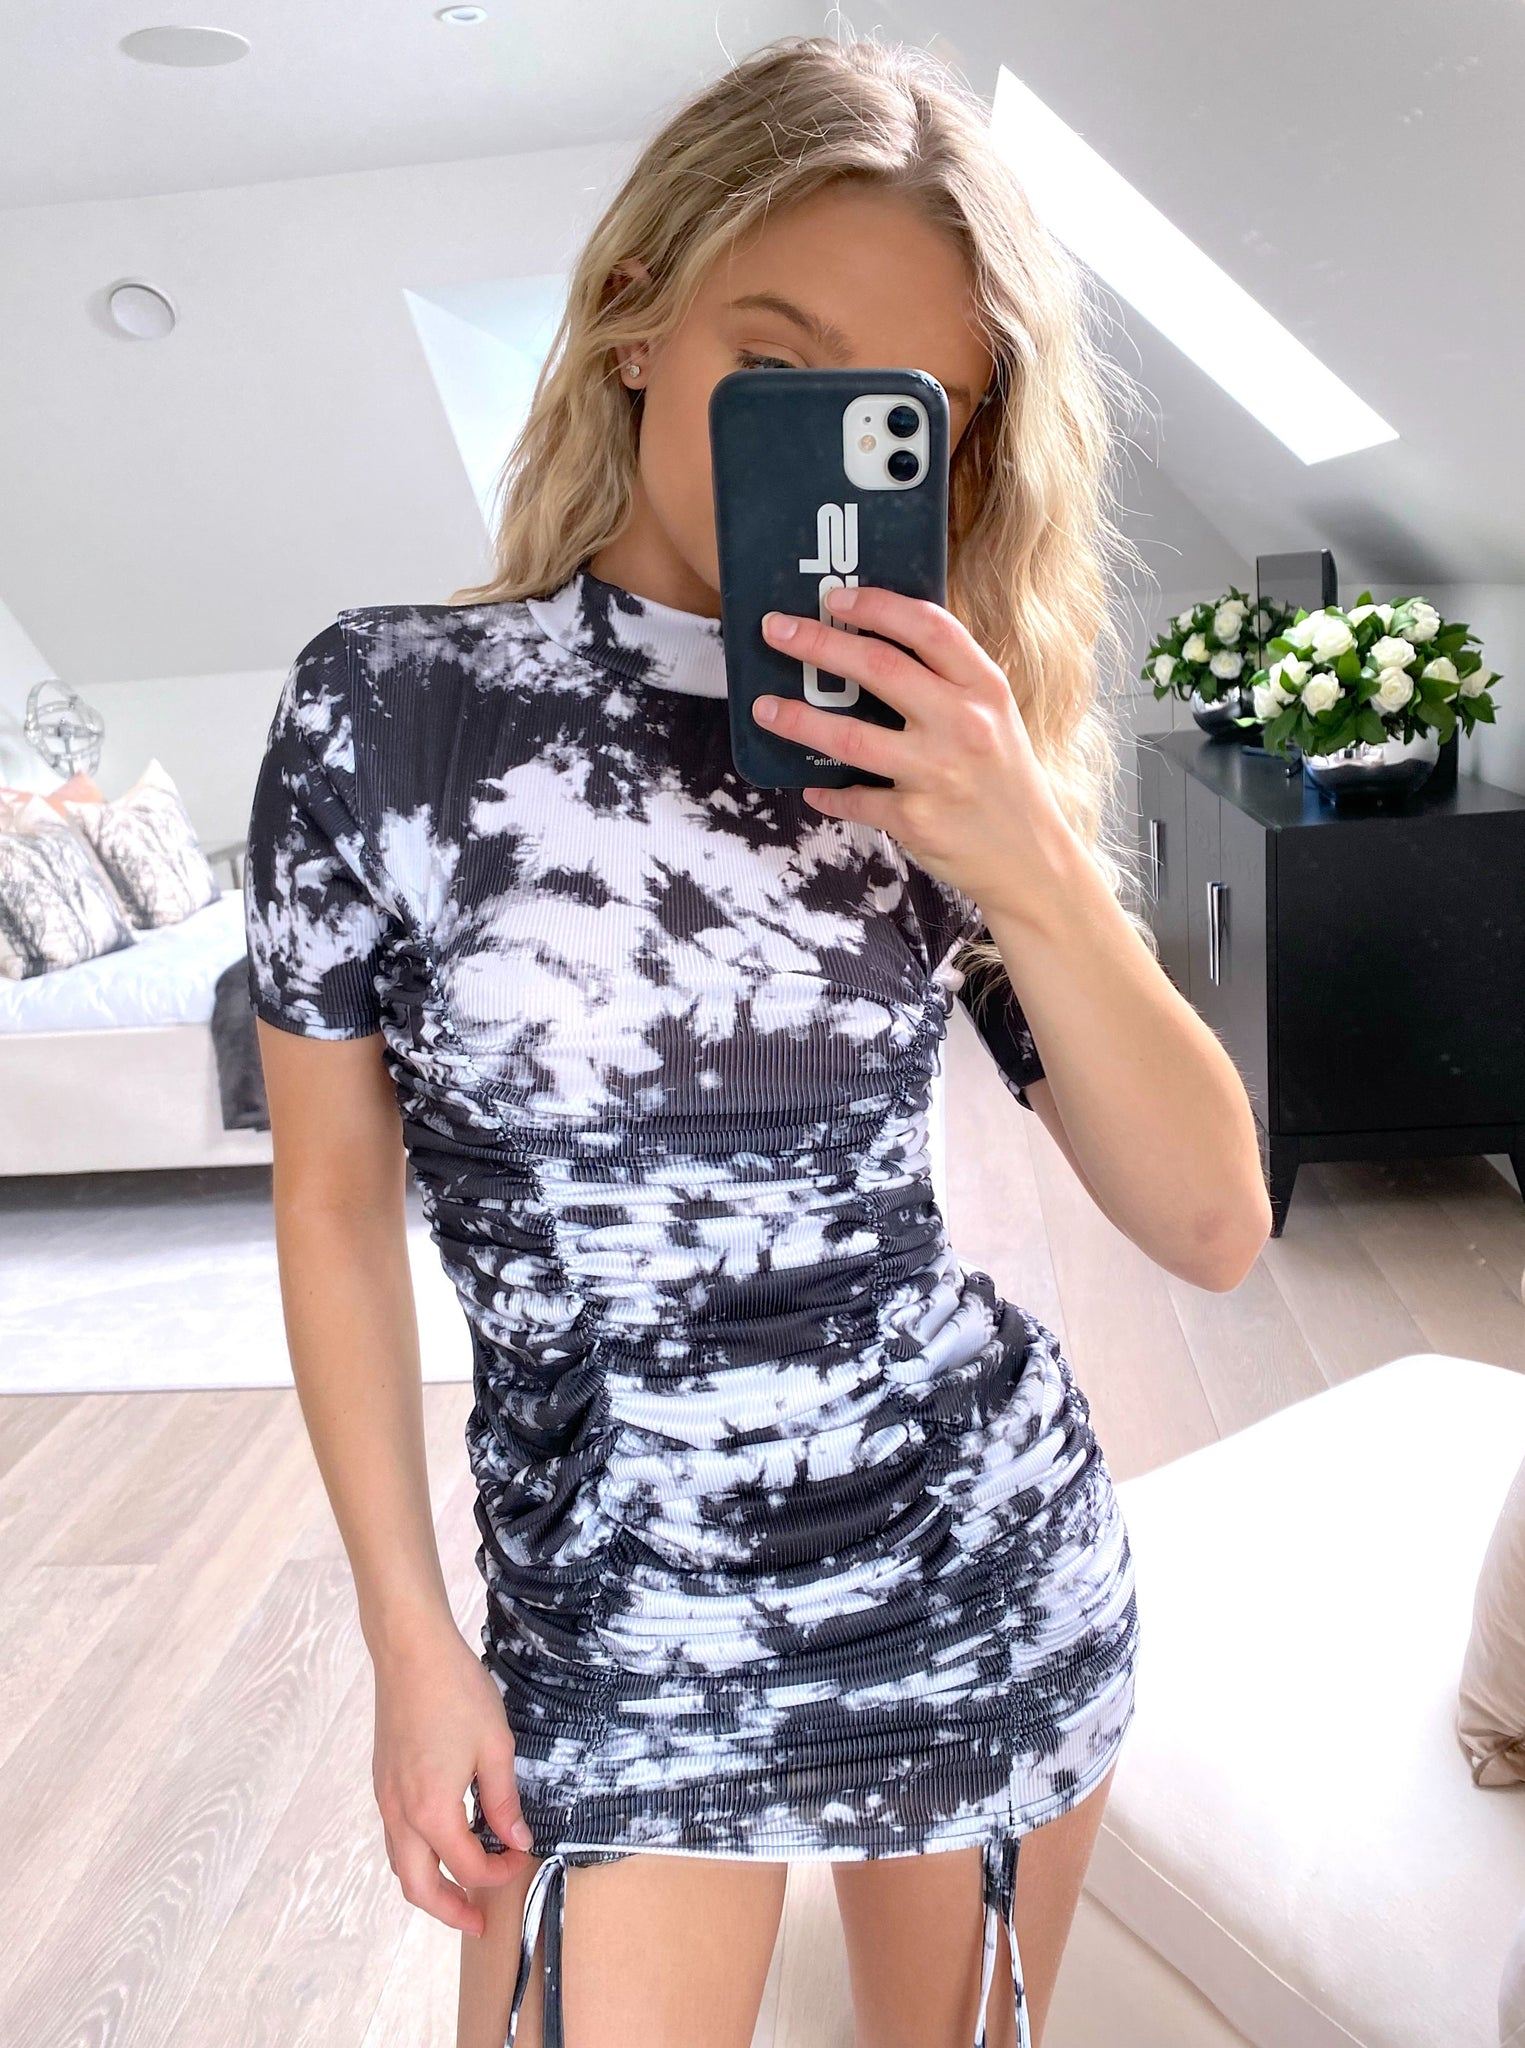 Fiya Ruched Dress in Black and White Tie Dye